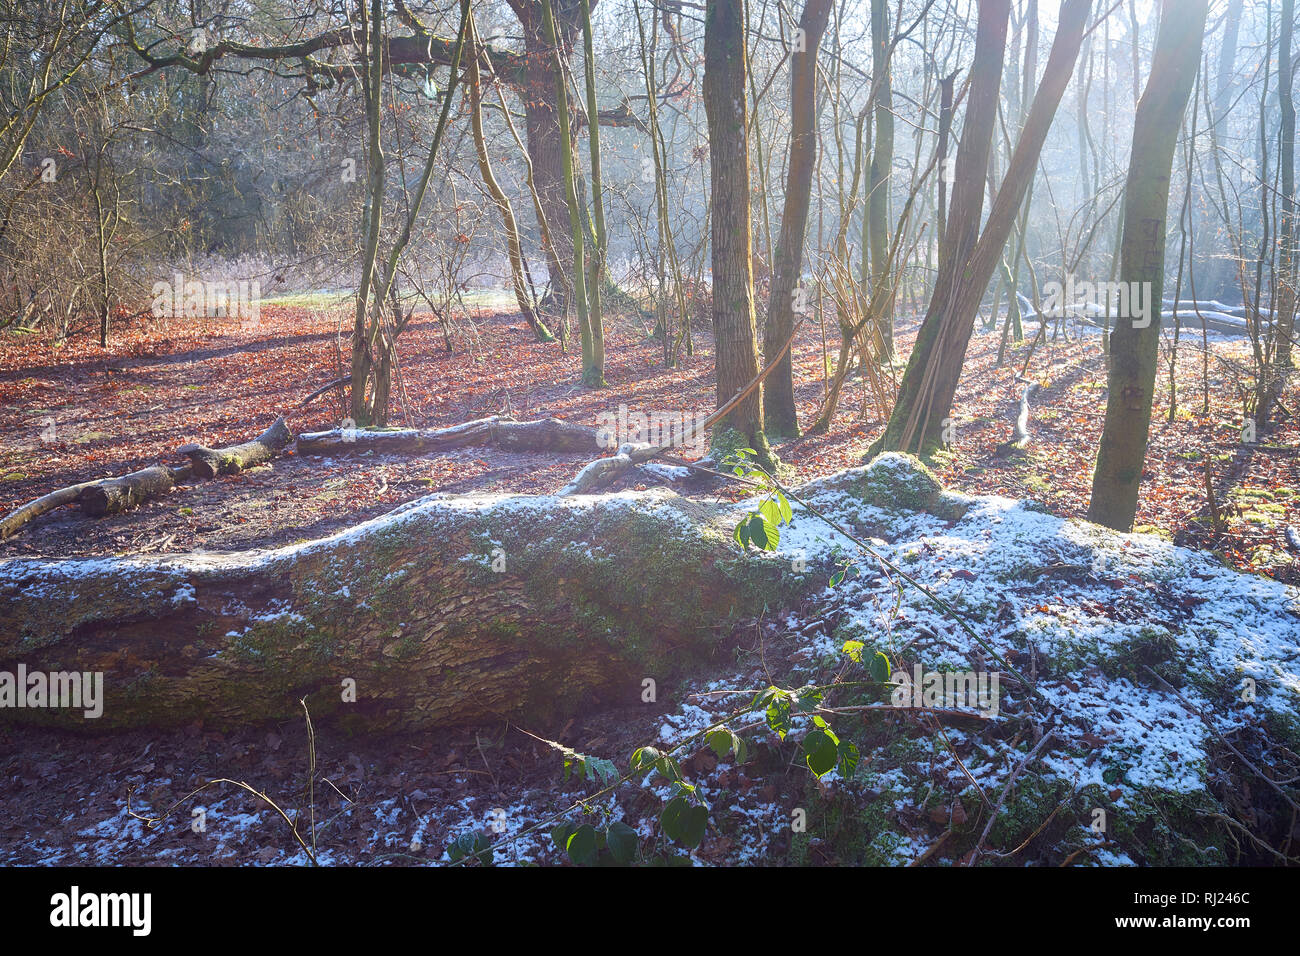 Frost and snow on a felled oak tree during a sunny winter day in a medieval english woodland dating from norman times and formerly used for hunting an - Stock Image